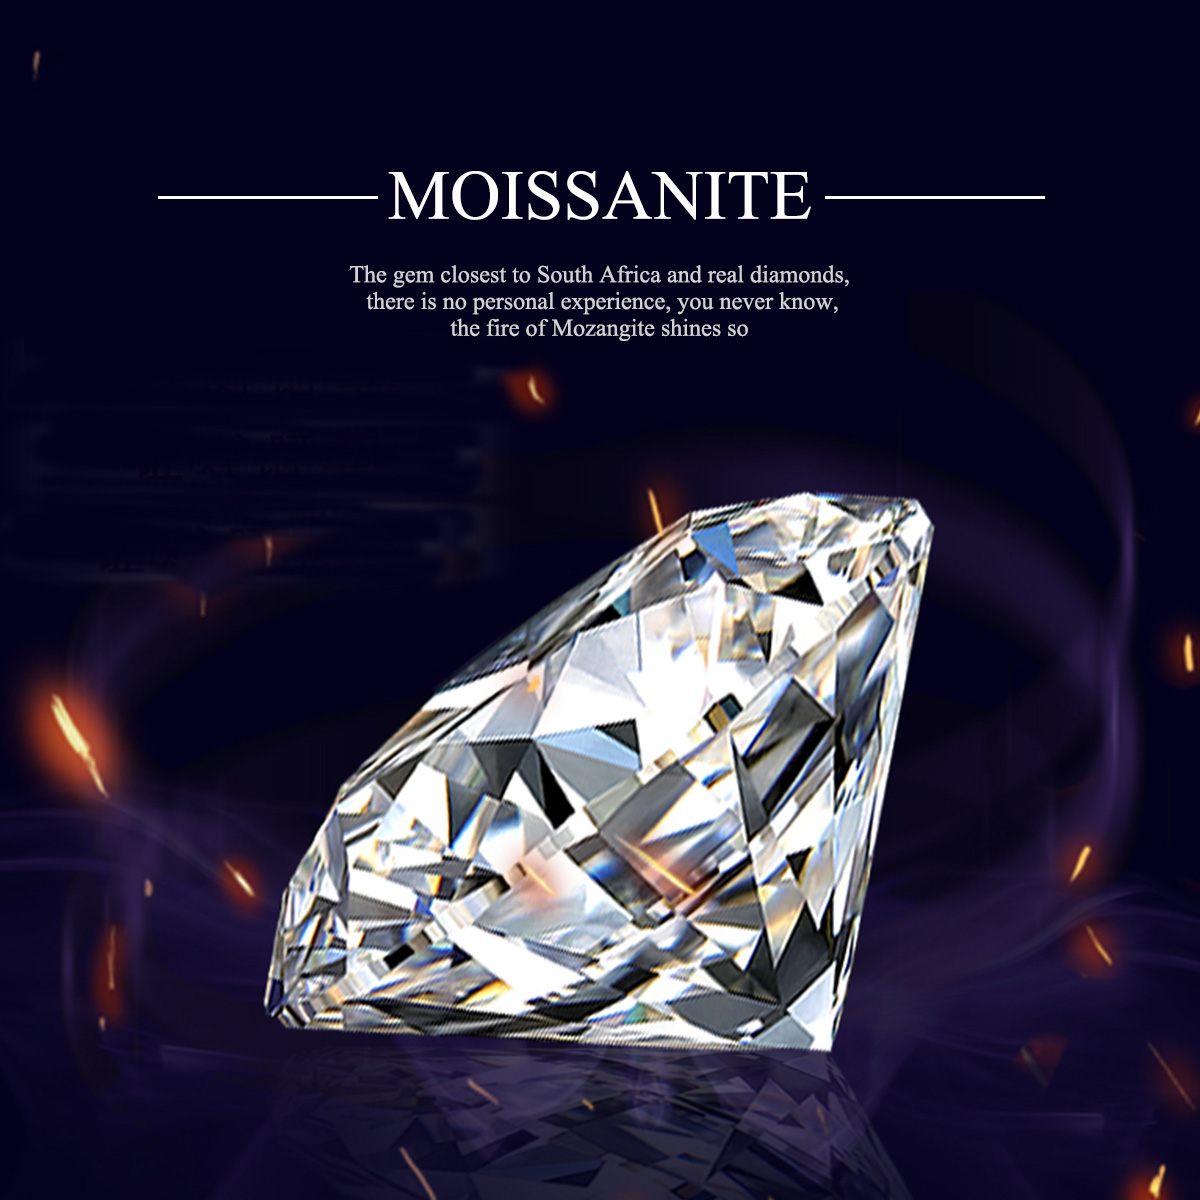 Szjinao Genuine Loose Gemstones Moissanite Stone G Color 5ct 11mm Undefined Lab Grown Diamond Jewelry For Diamond Ring Material